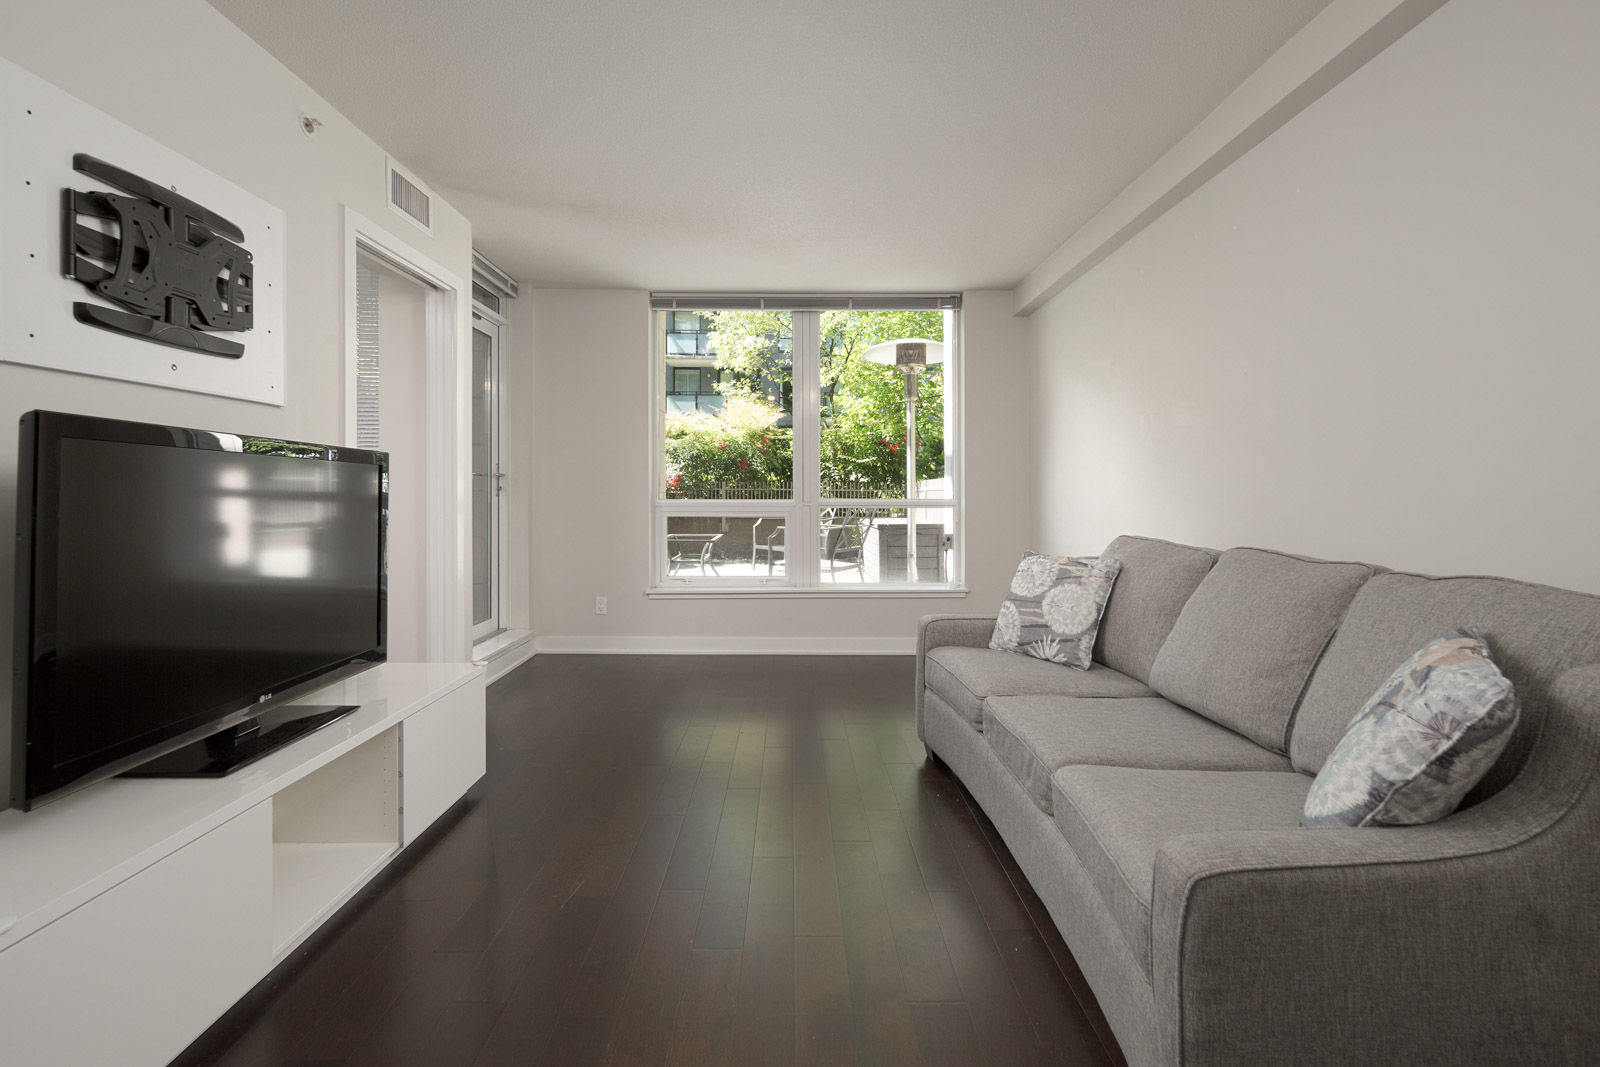 living room with laminated floors in rental condo in the Downtown neighbourhood of Vancouver